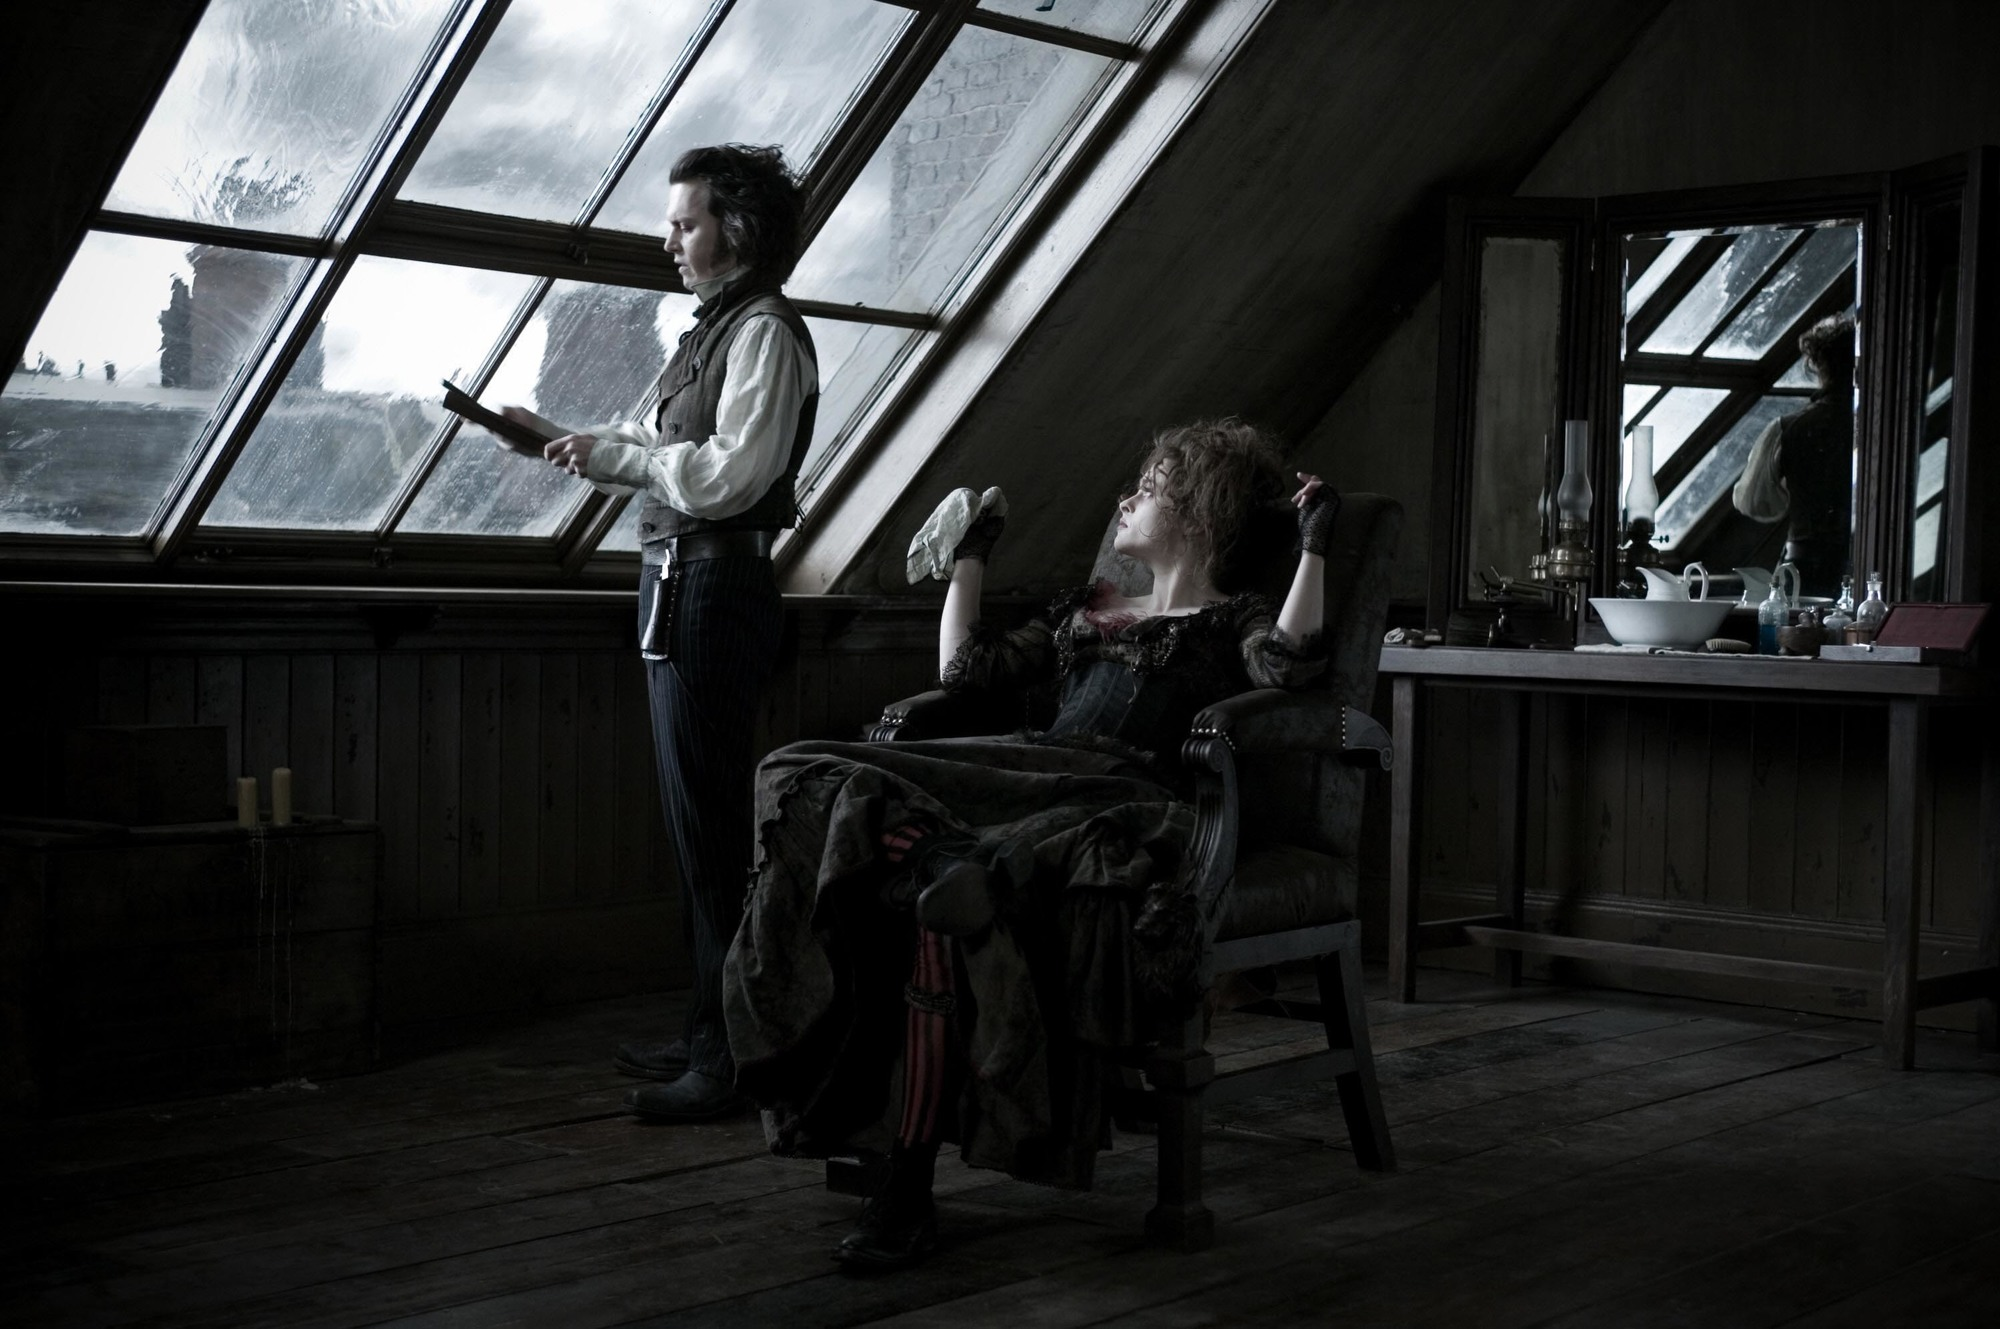 Sweeney Todd (Johnny Depp) and Mrs Lovett (Helena Bonham Carter) in Sweeney's barber shop in Sweeney Todd: The Demon Barber of Fleet Street (2007)